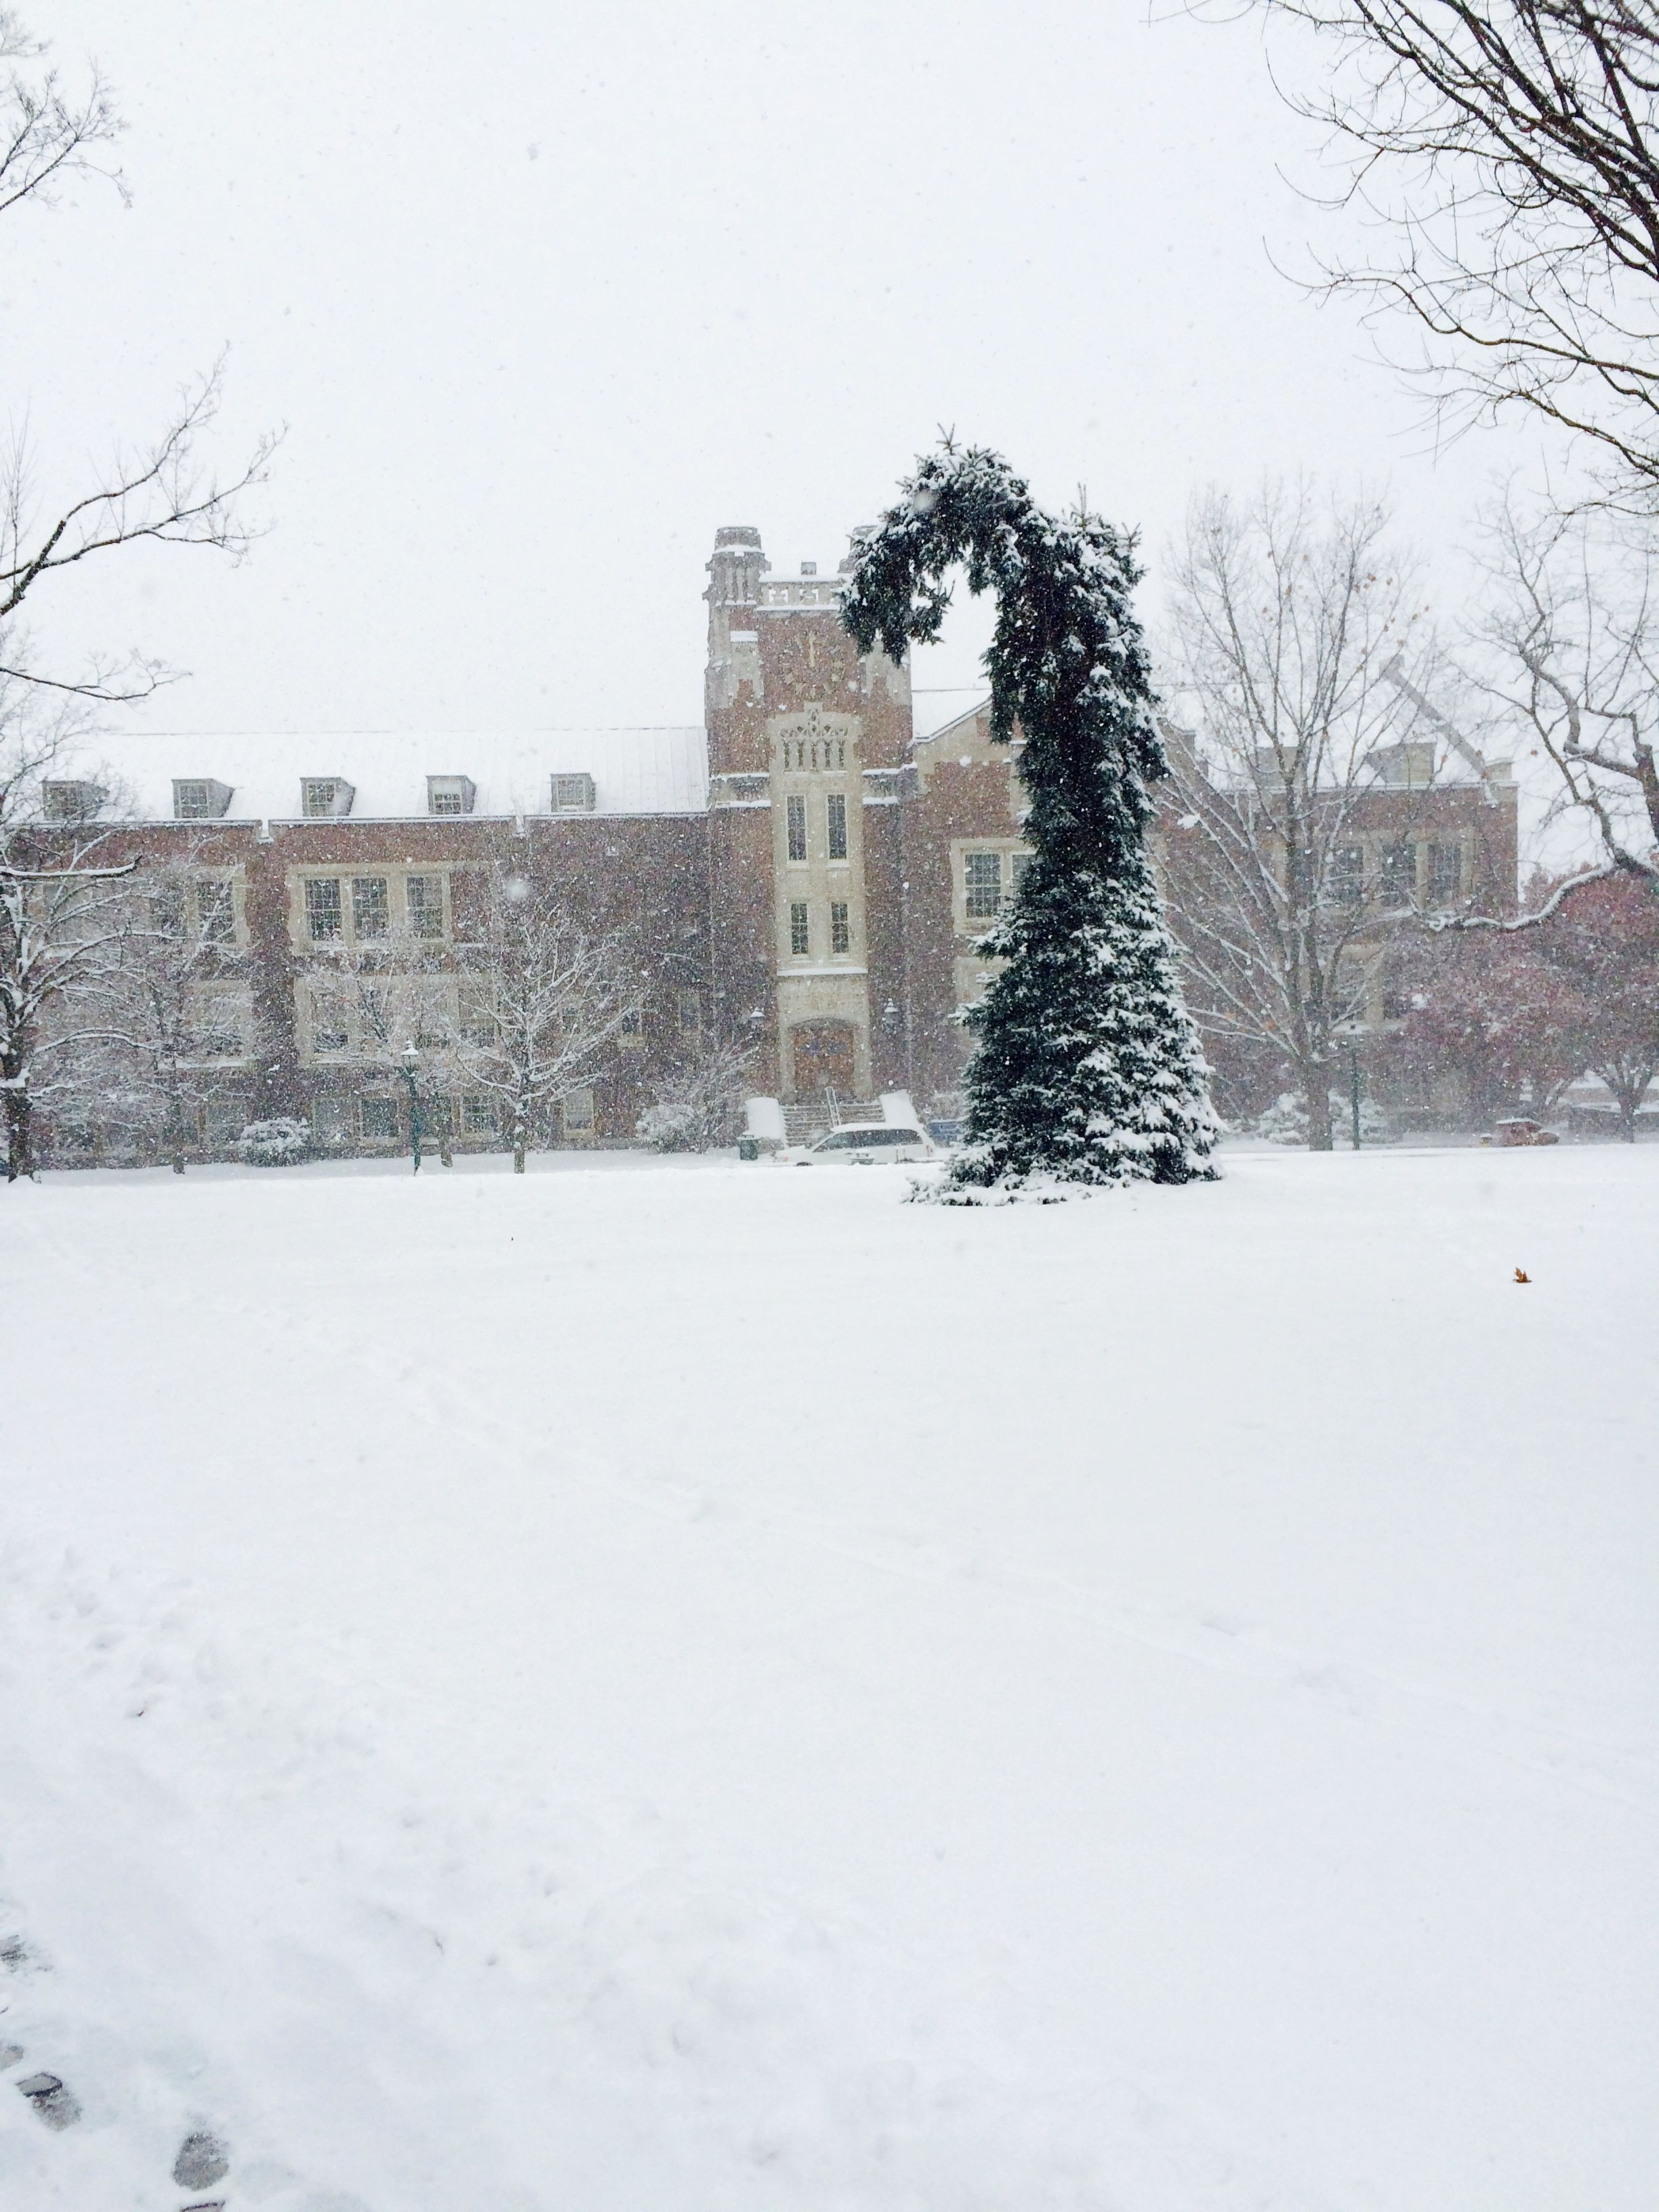 This Photo Encompasses Two Major Things That Symbolize Geneseo To Me